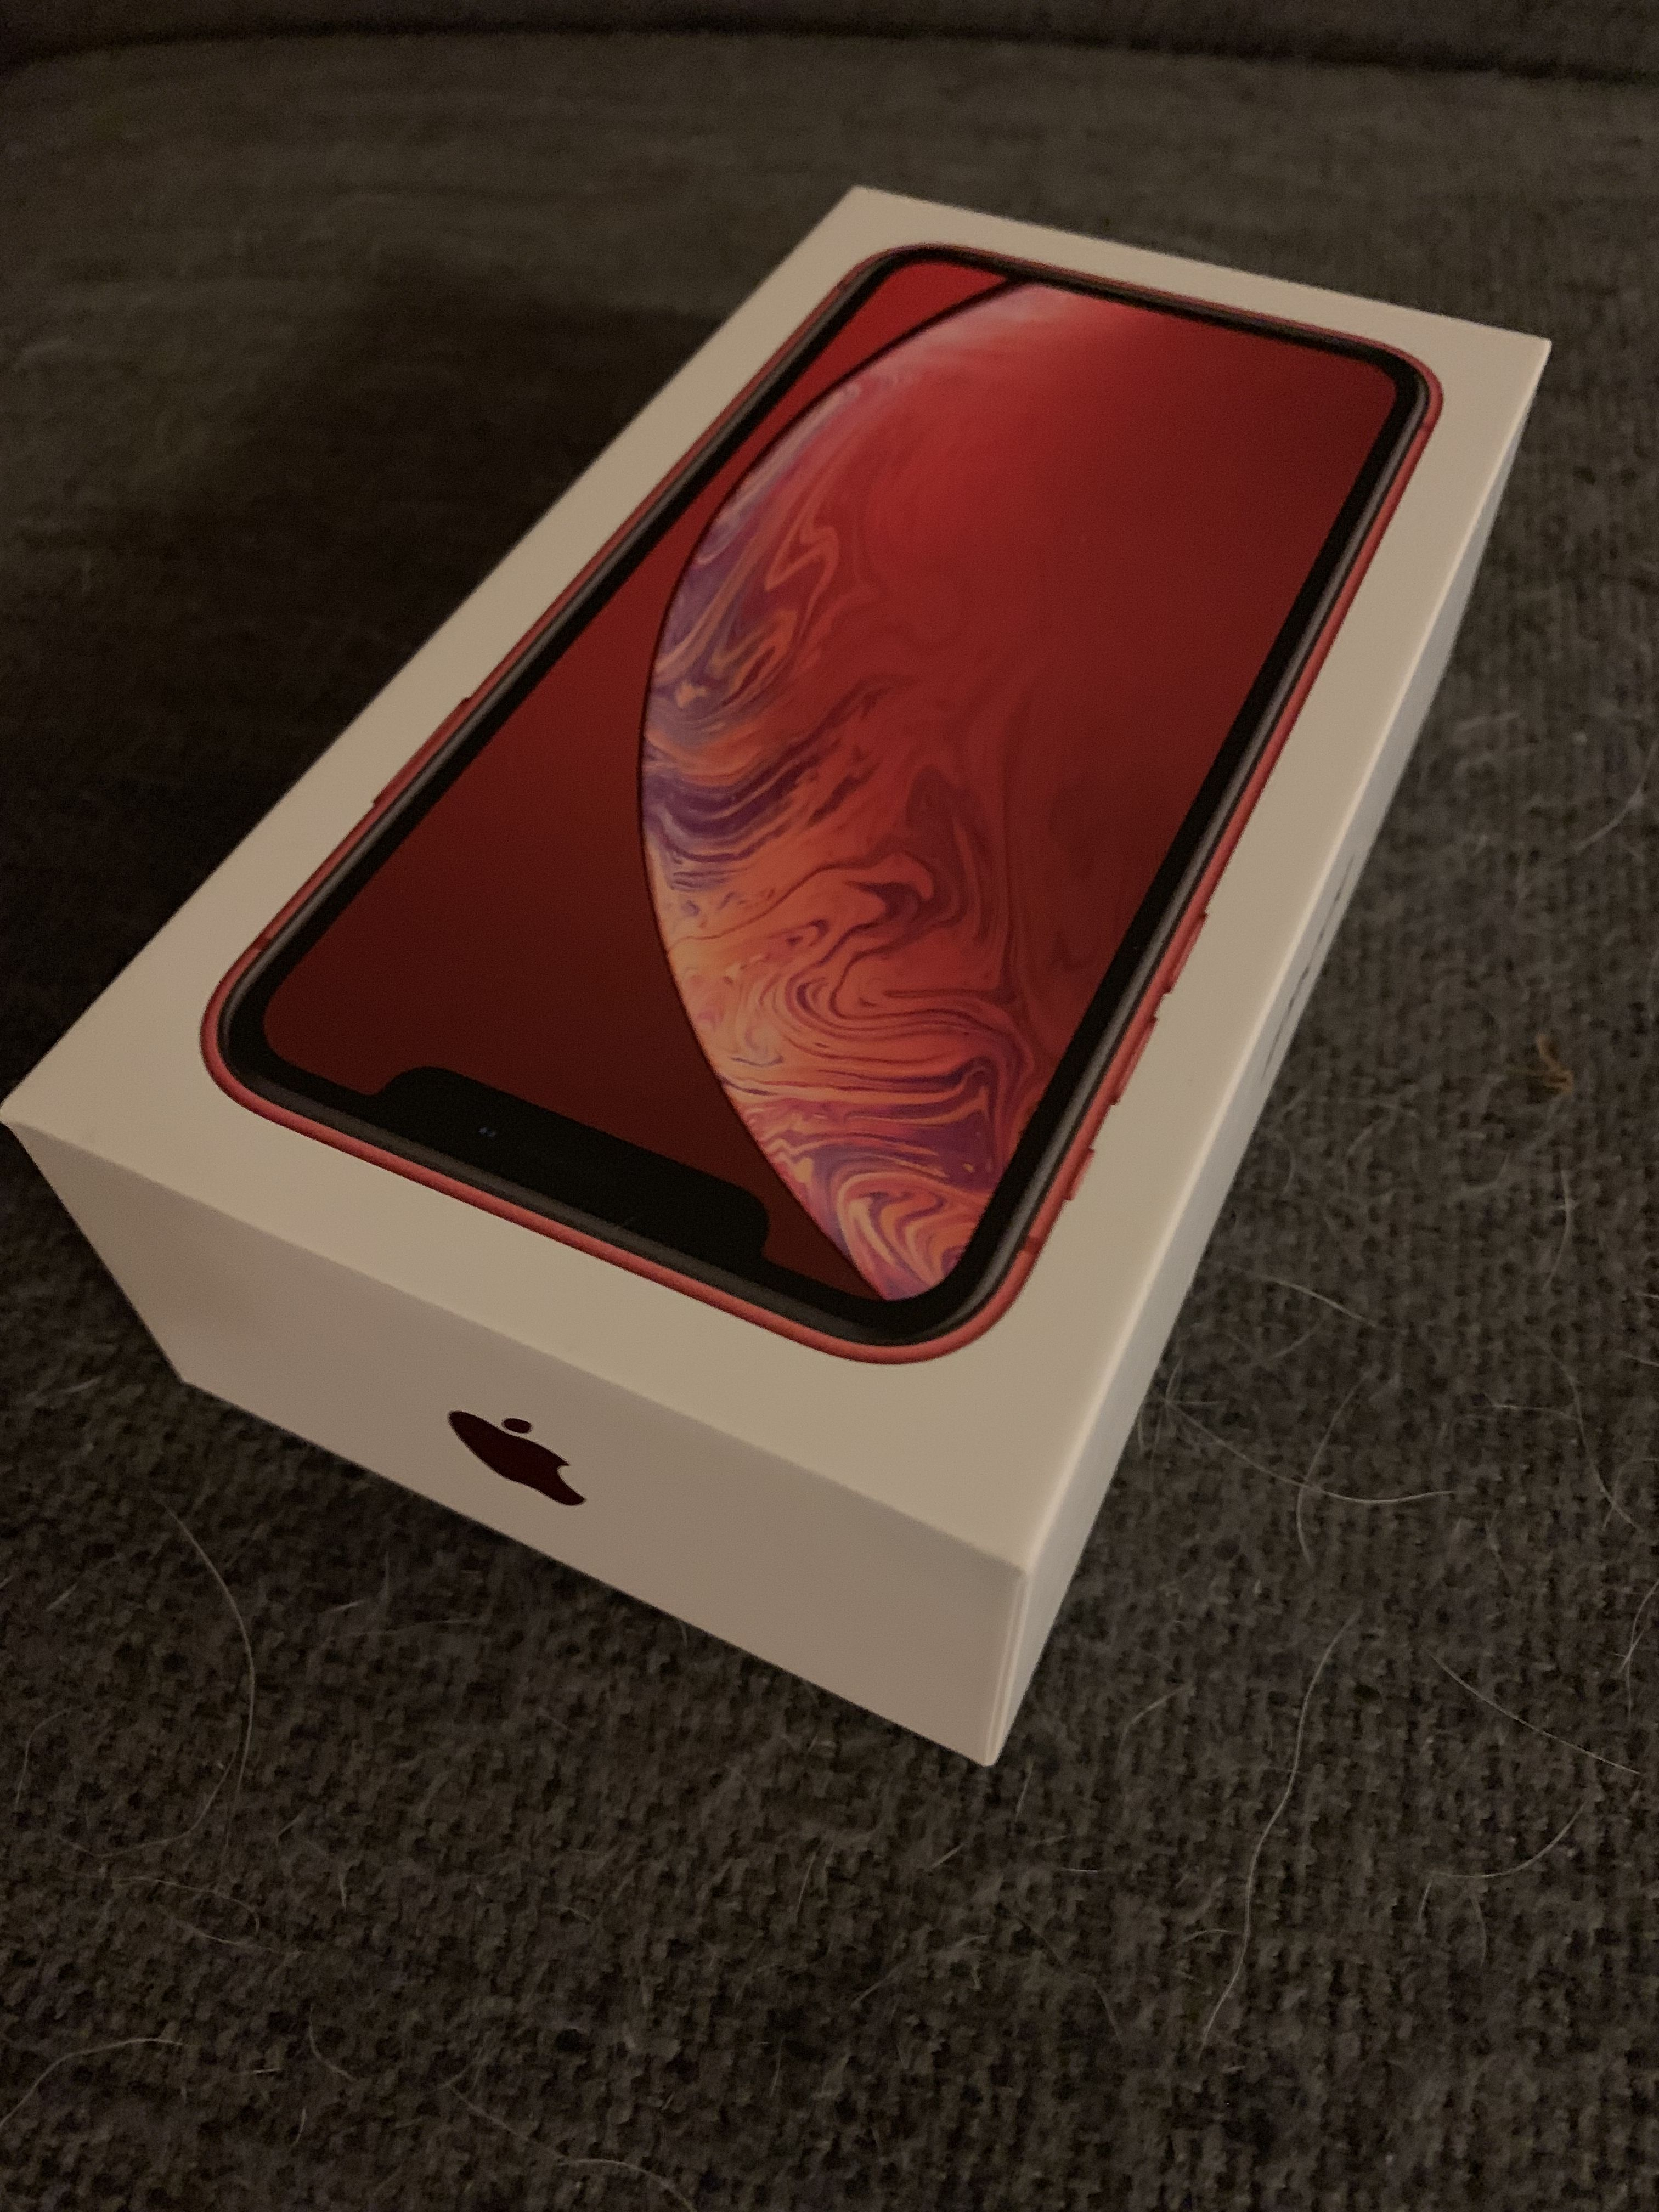 My new iphone xr red 128gb new iphone new apple watch